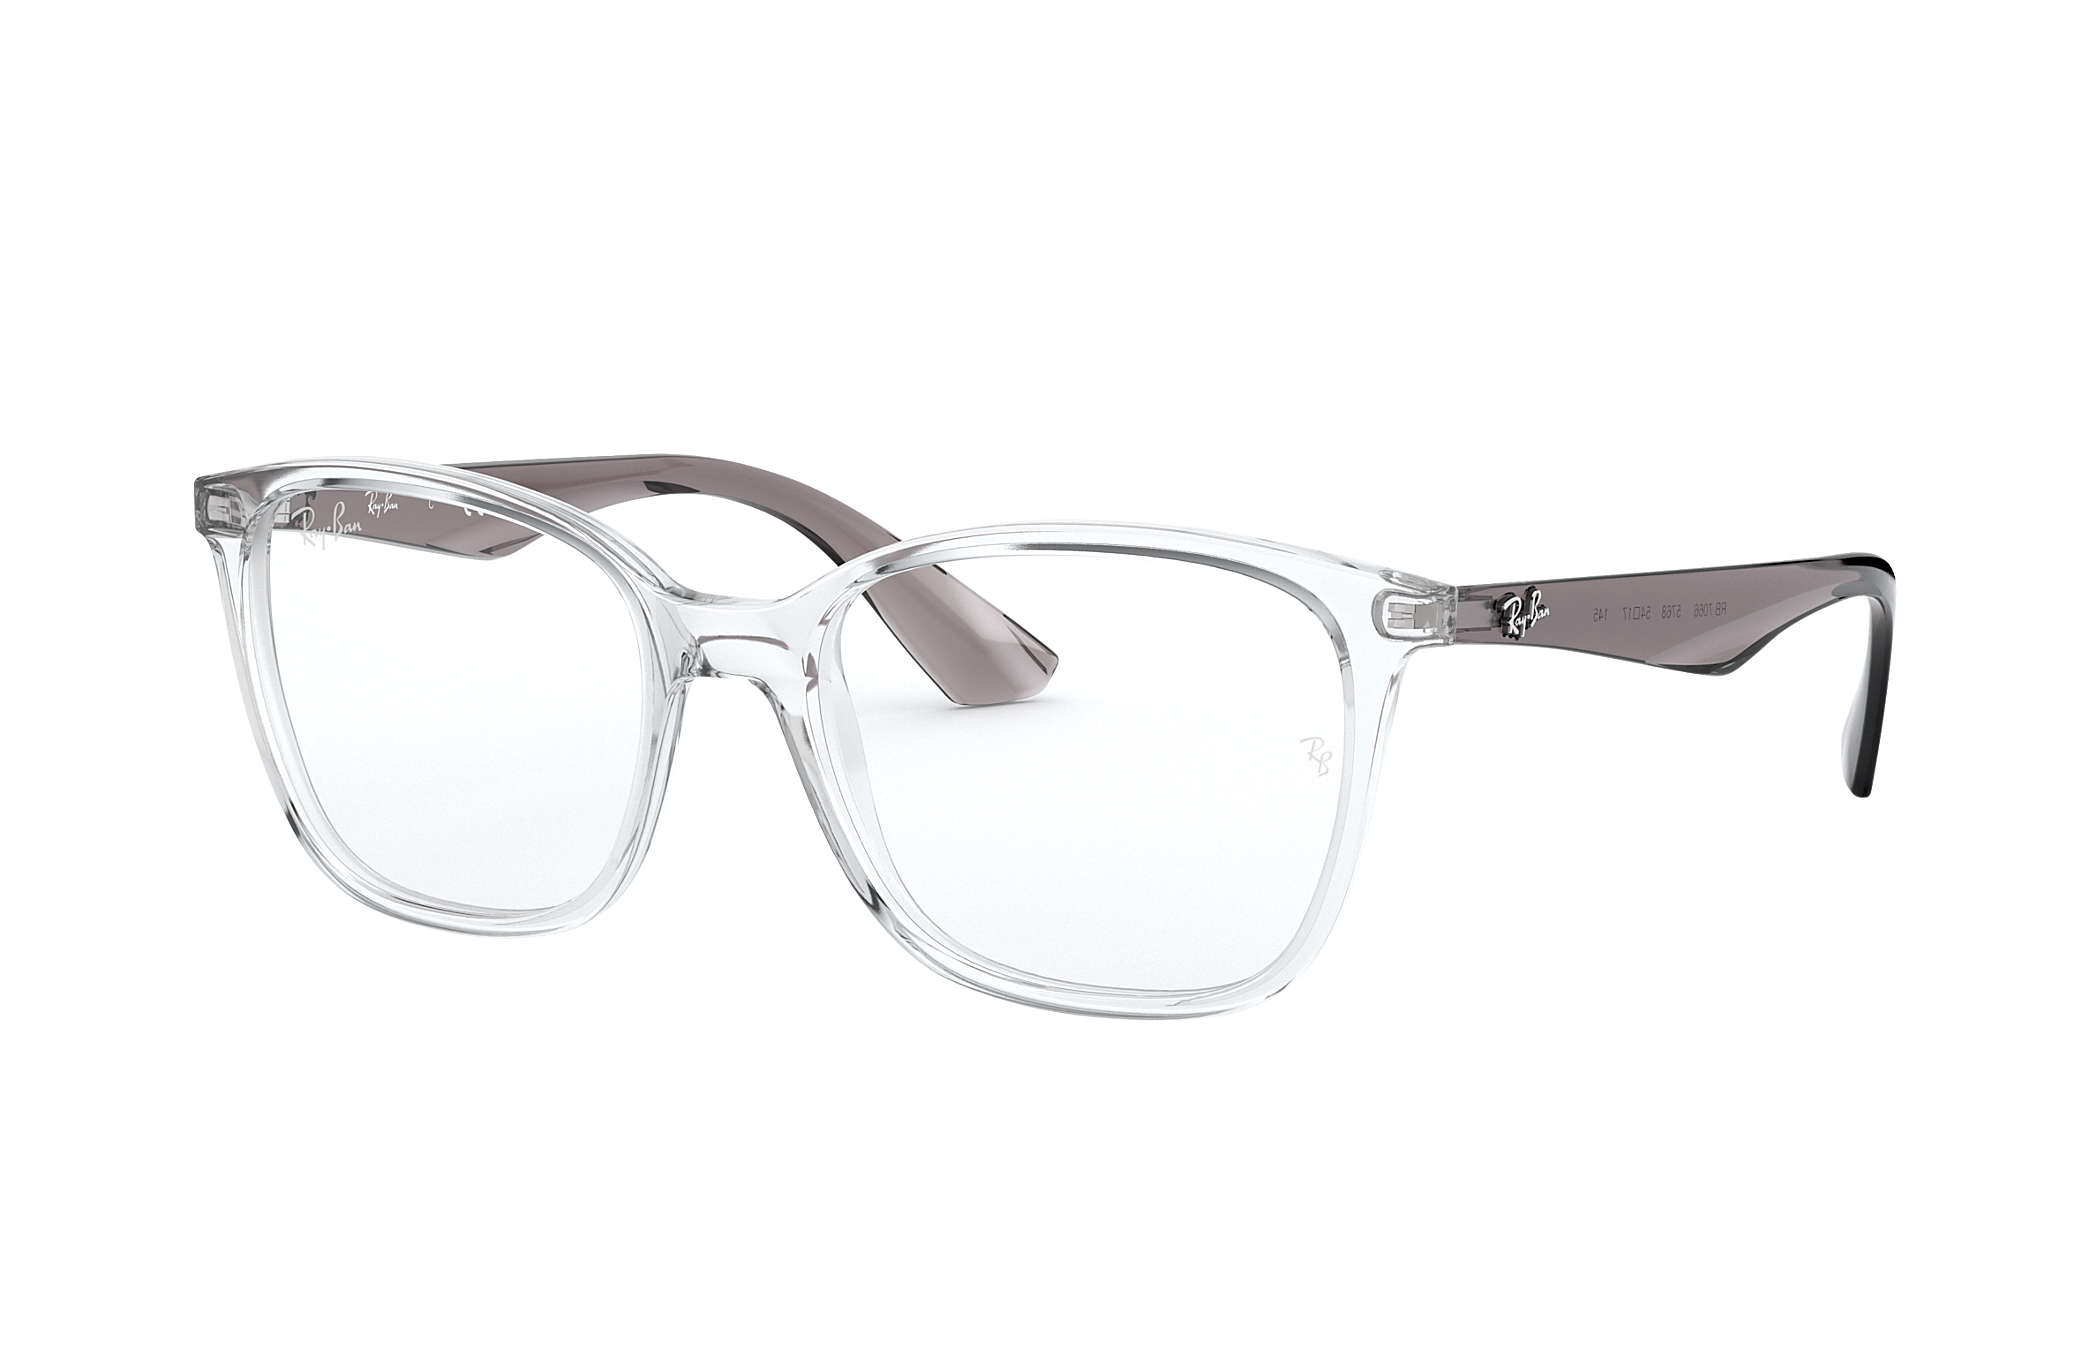 08a2ce713366b Ray-Ban prescription glasses RB7066 Transparent - Injected ...